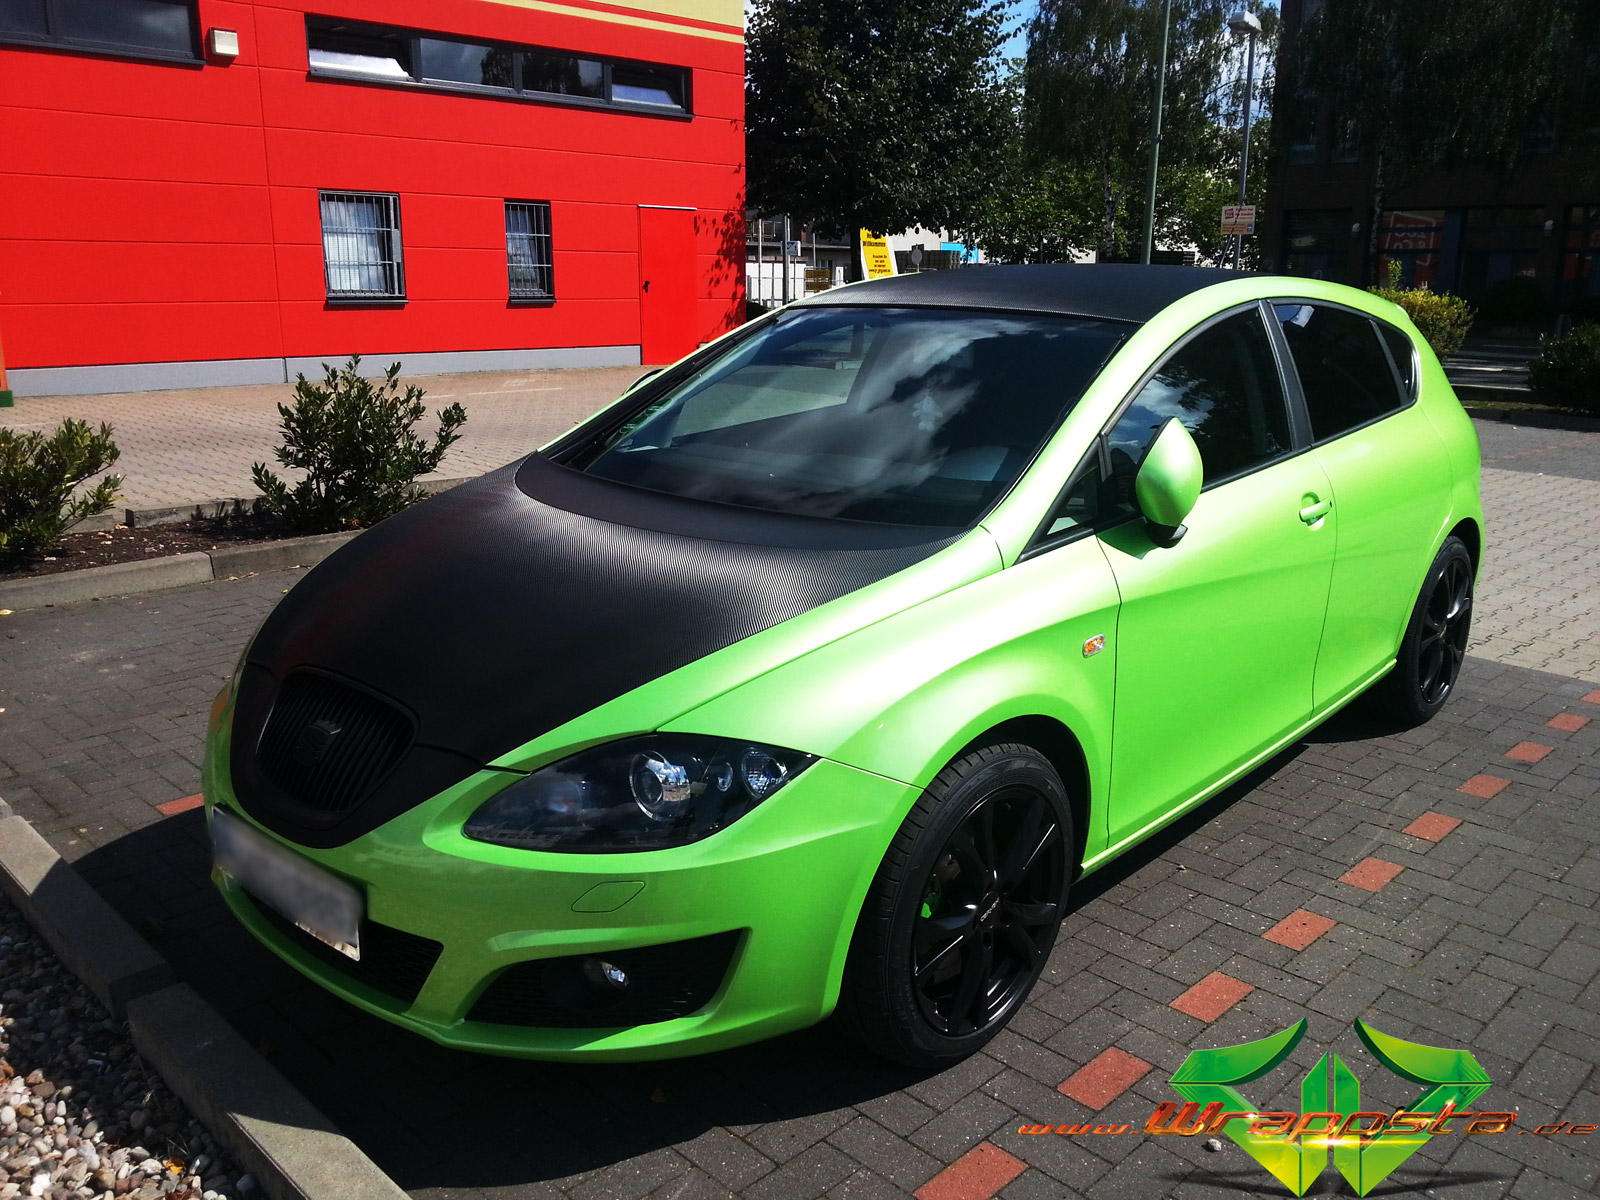 seat leon light green pearlescent 3d carbon scheibent nung wrappsta berlin. Black Bedroom Furniture Sets. Home Design Ideas